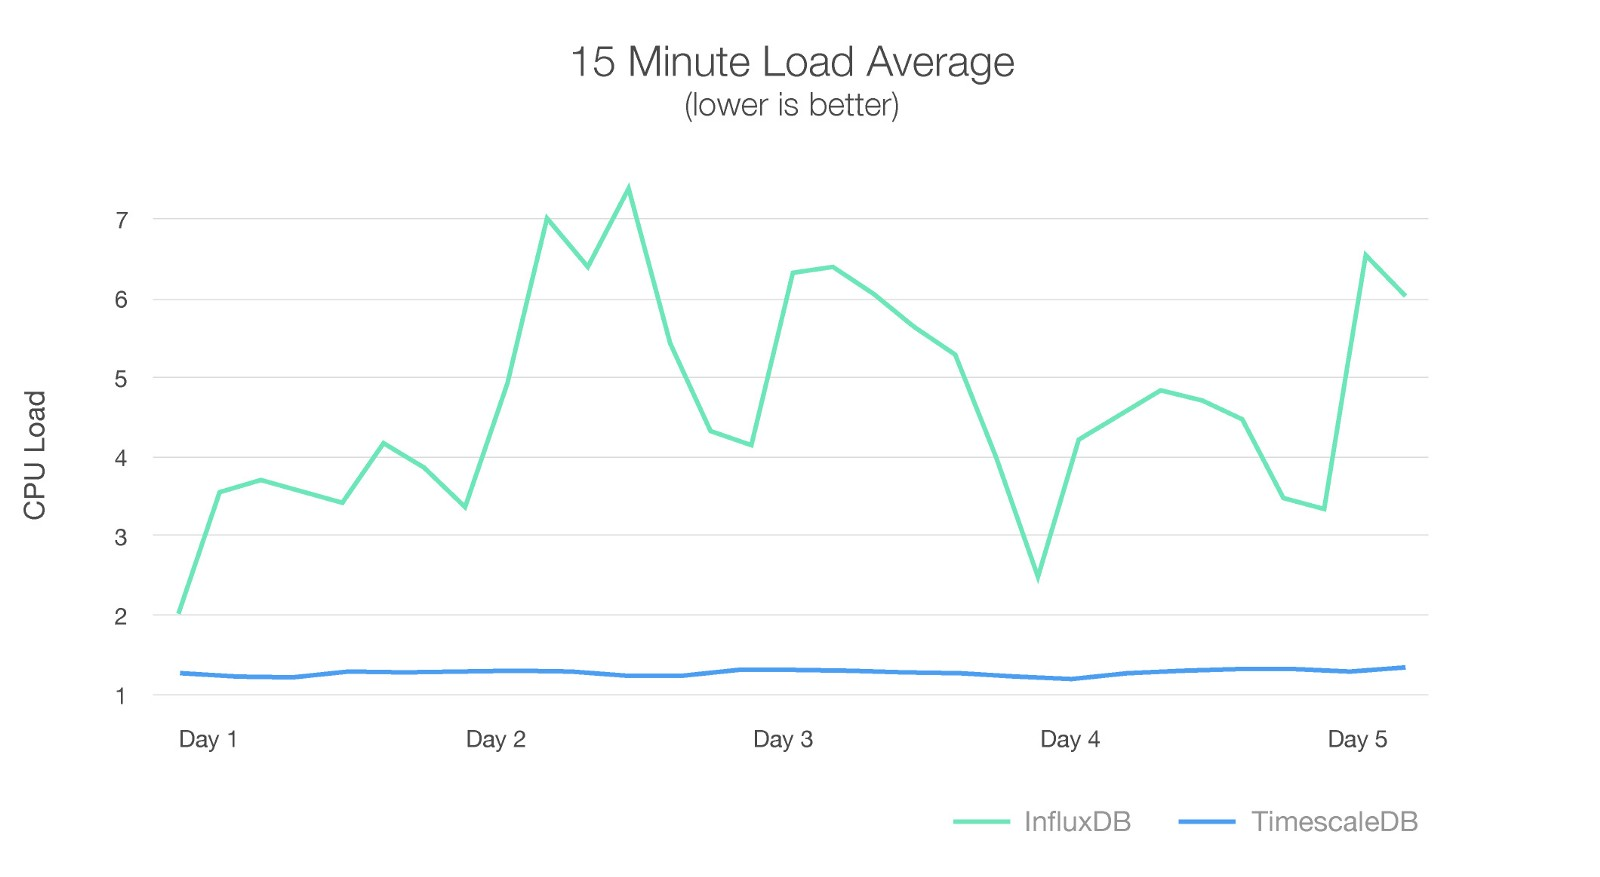 Chart comparing CPU land when using InfluxDB and TimescaleDB